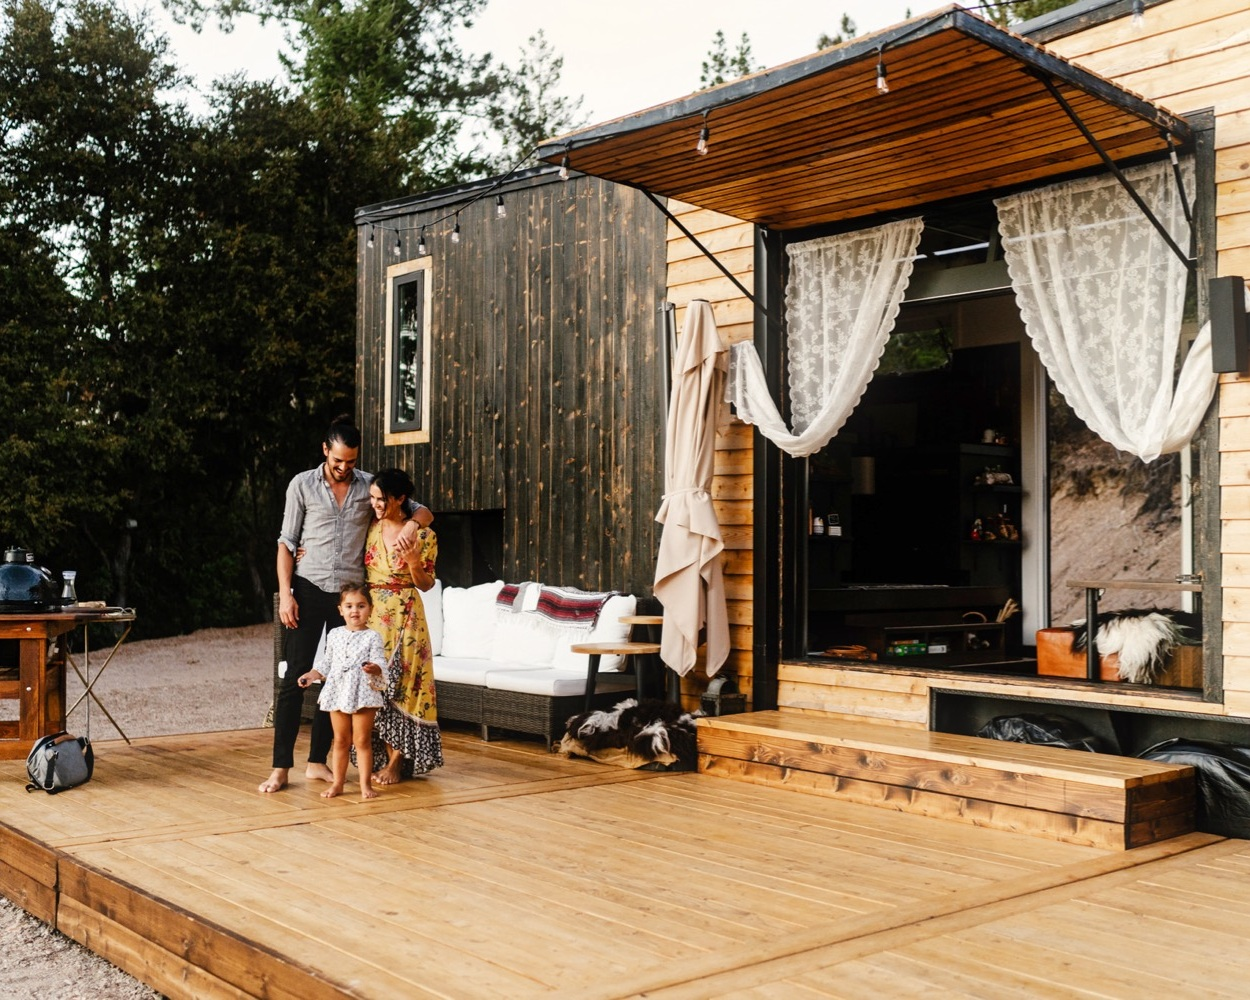 a beautiful mess - We started thinking about tiny homes as a way to beat housing costs in the San Francisco Bay area. Why rent a tiny apartment for thousands of dollars when we could buy a luxury tiny home for way less? In our mind, this was a long-term investment, even if we only end up living in it full-time for a few years…